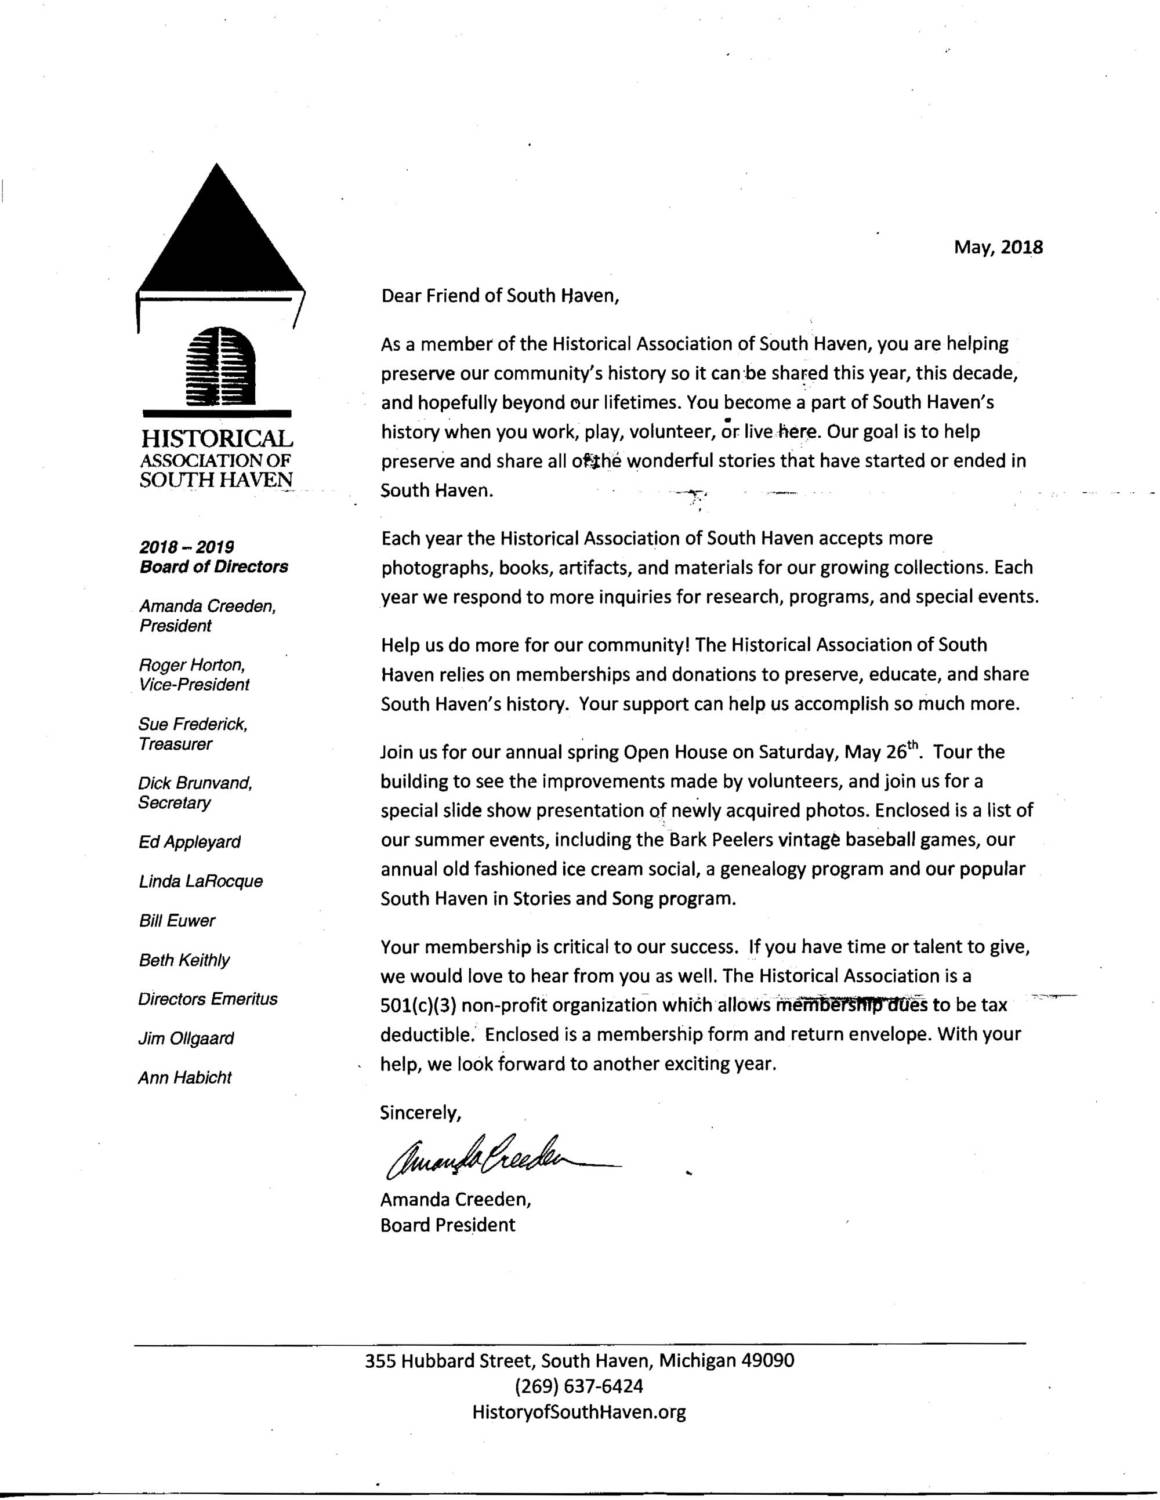 2018 Membership Letter - Historical Association of South Haven